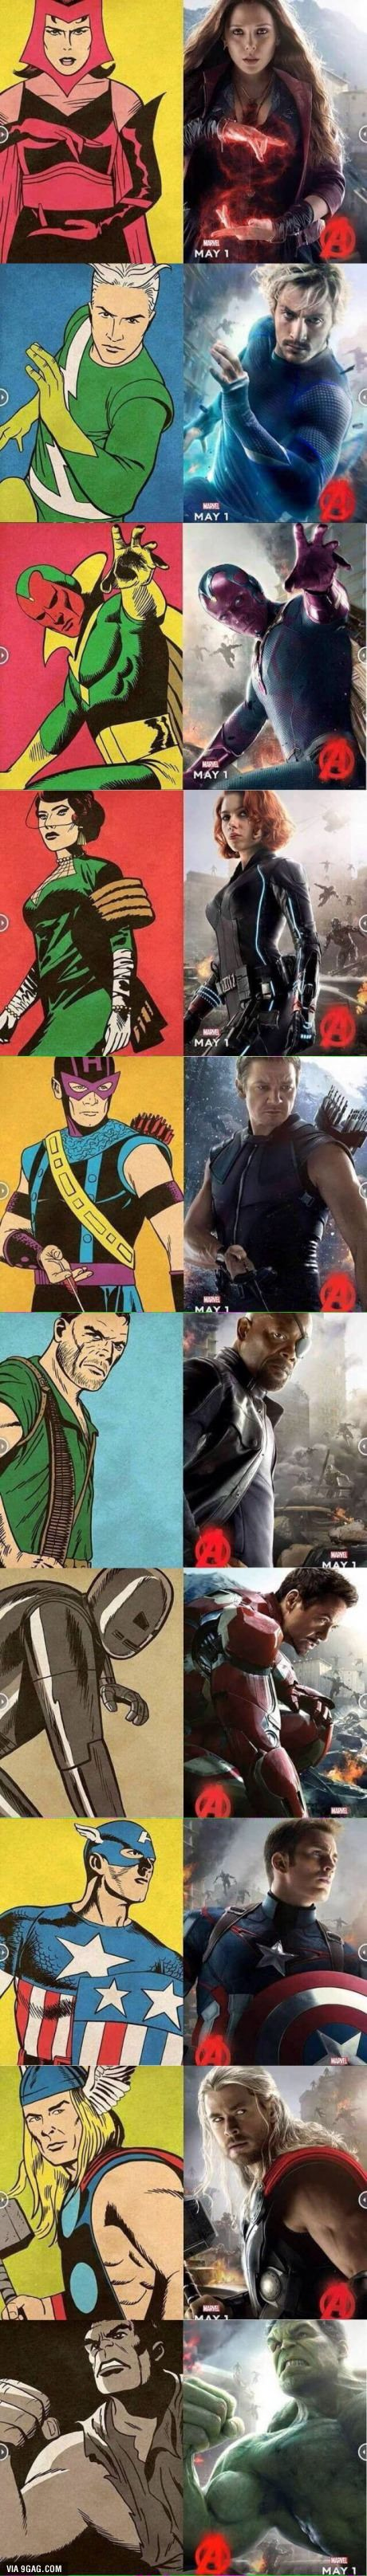 Original Avengers compared to the movie posters --Marvel you hit it on the nose!!